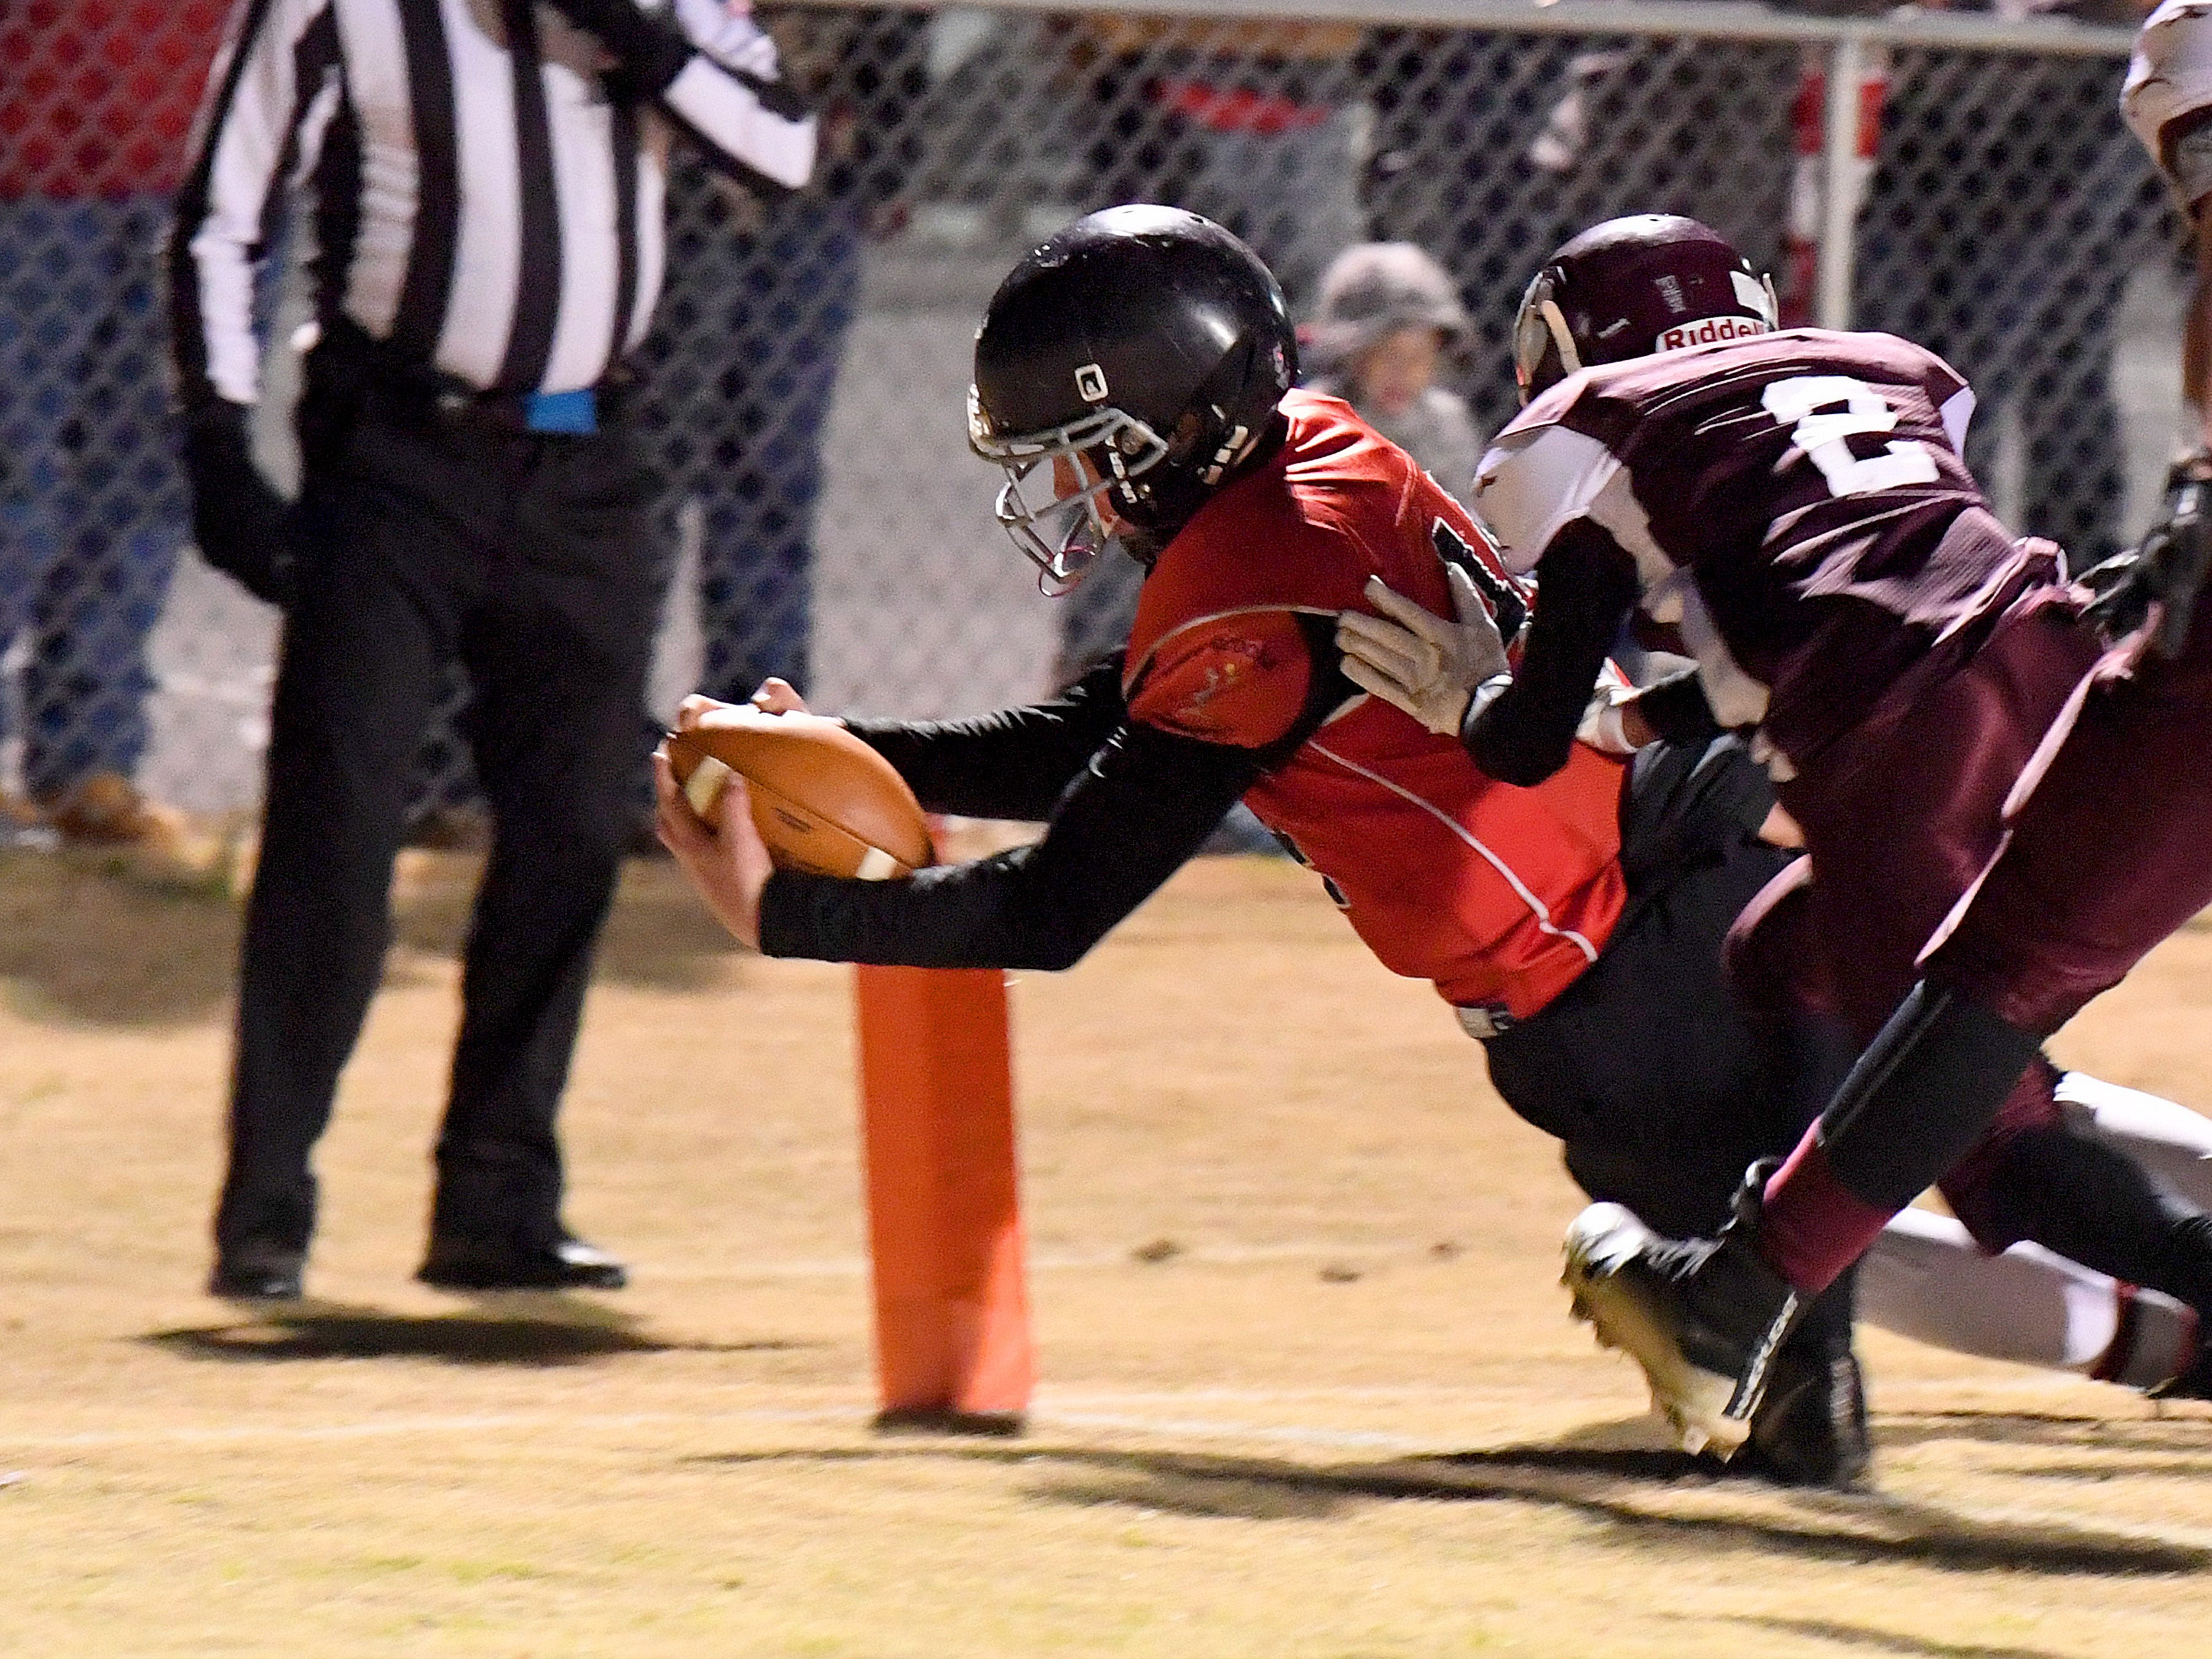 Riverheads' Cayden Cook Cash dives into the end zone for a touchdown during the Augusta County Quarterback Club Seniors Super Bowl in Fishersville on Sunday, Nov. 11, 2018.  RIverheads defeats Stuarts Draft, 38-6.